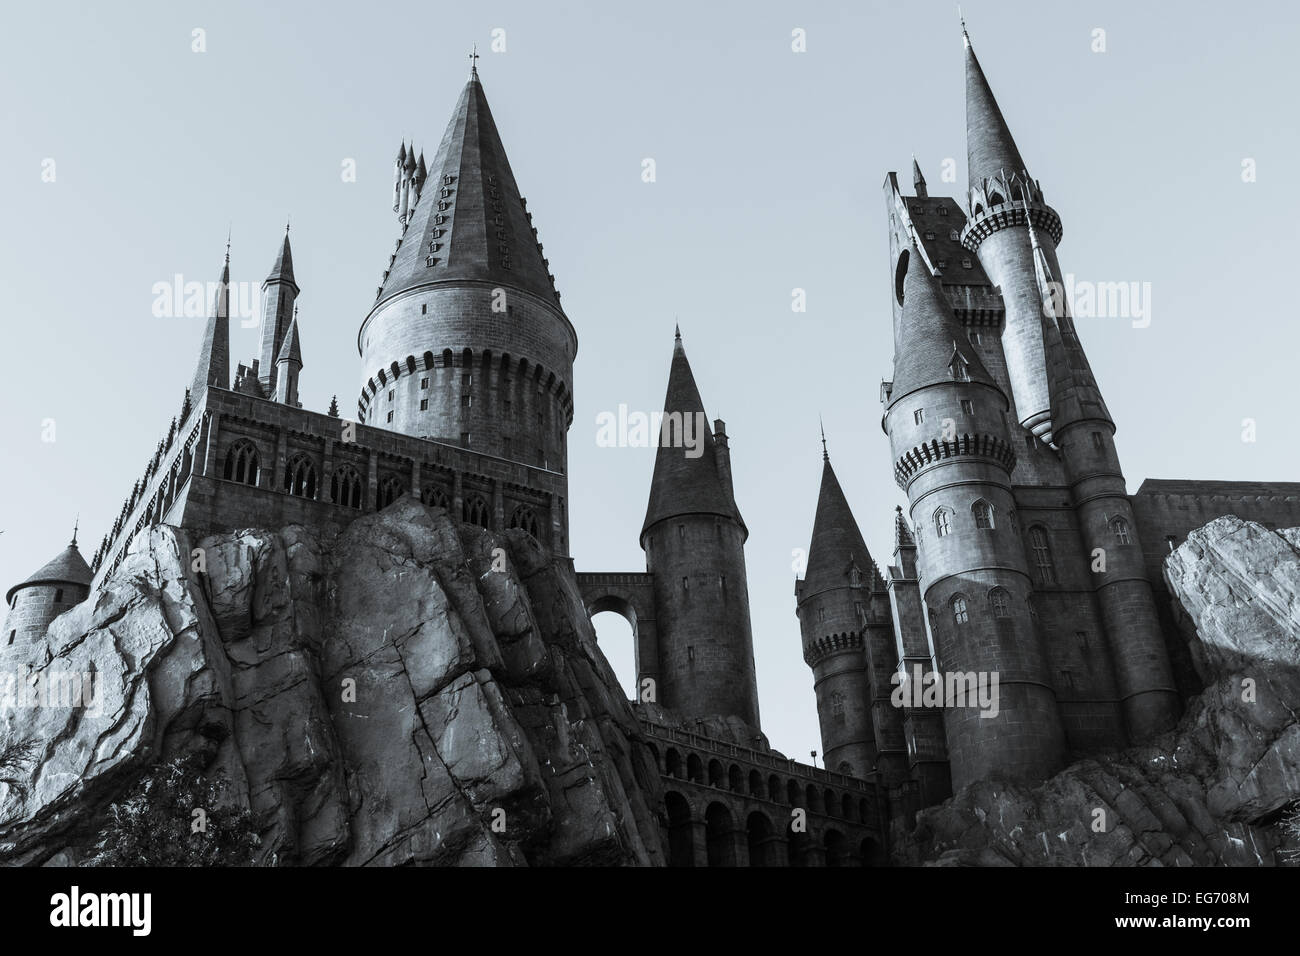 Views of the Wizarding World of Harry Potter attraction at Universal Studios in Florida. - Stock Image